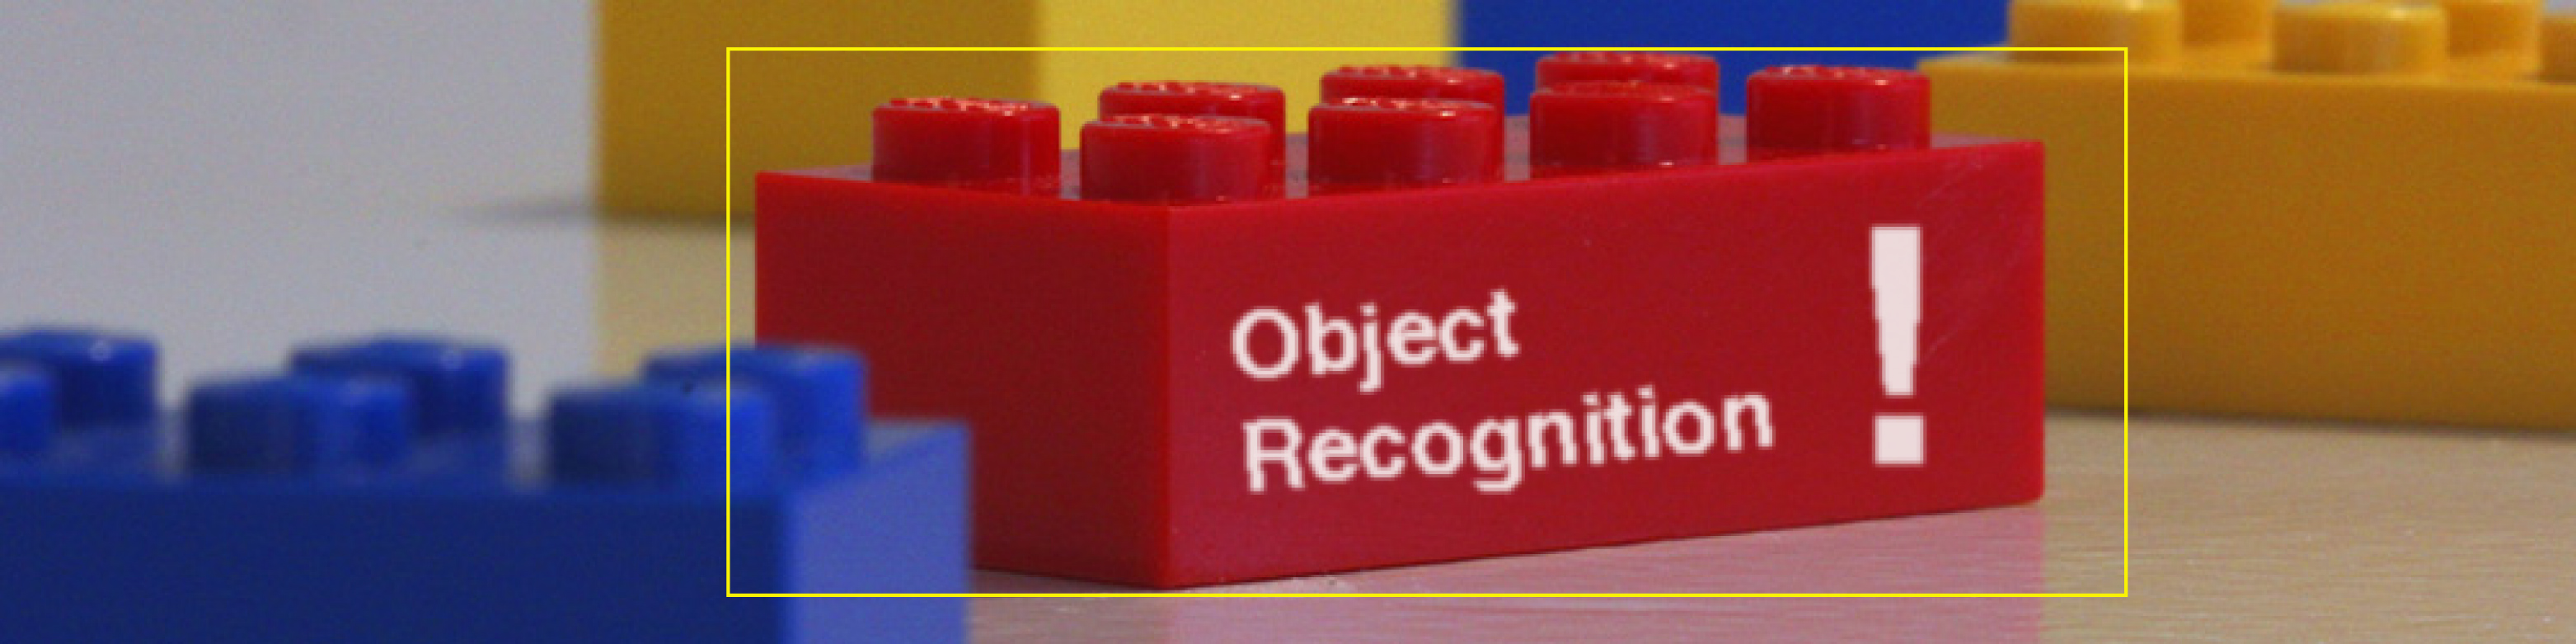 Object Recognitionbanner/>             </div>          </header> <!-- end article header -->        <section class=